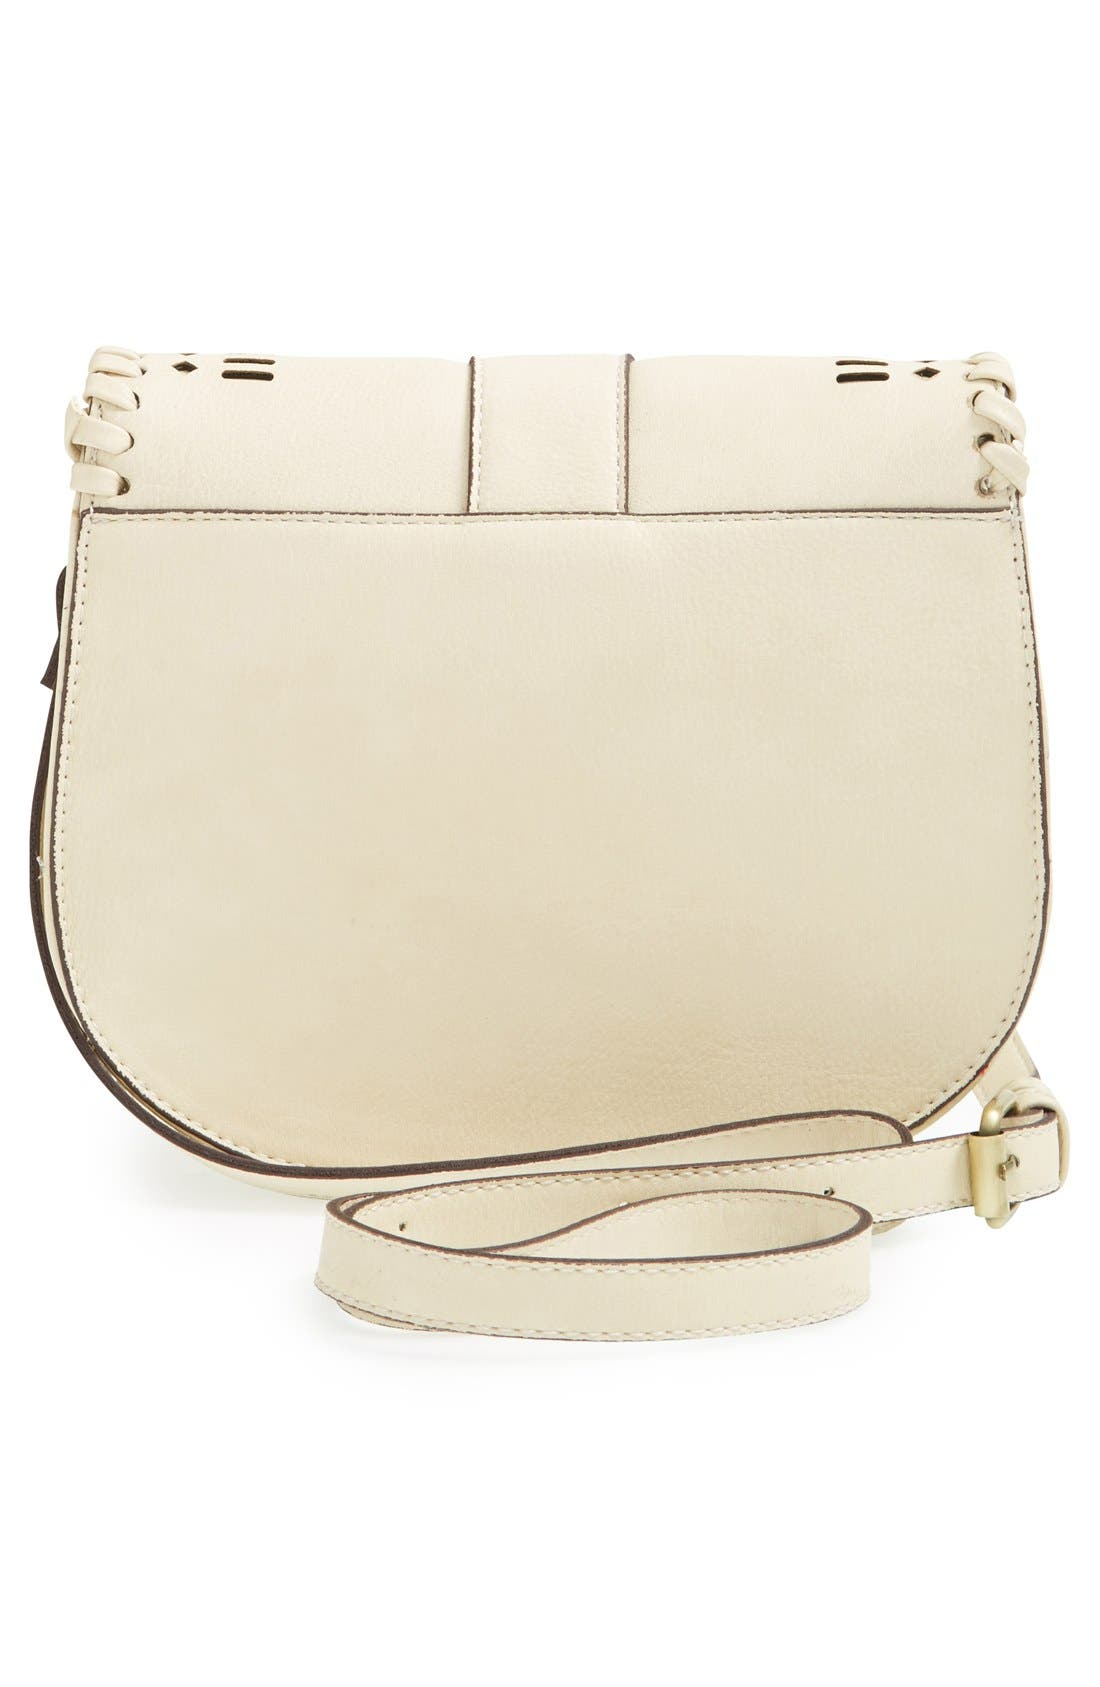 'Kianna' Perforated Faux Leather Crossbody Bag,                             Alternate thumbnail 5, color,                             IVORY